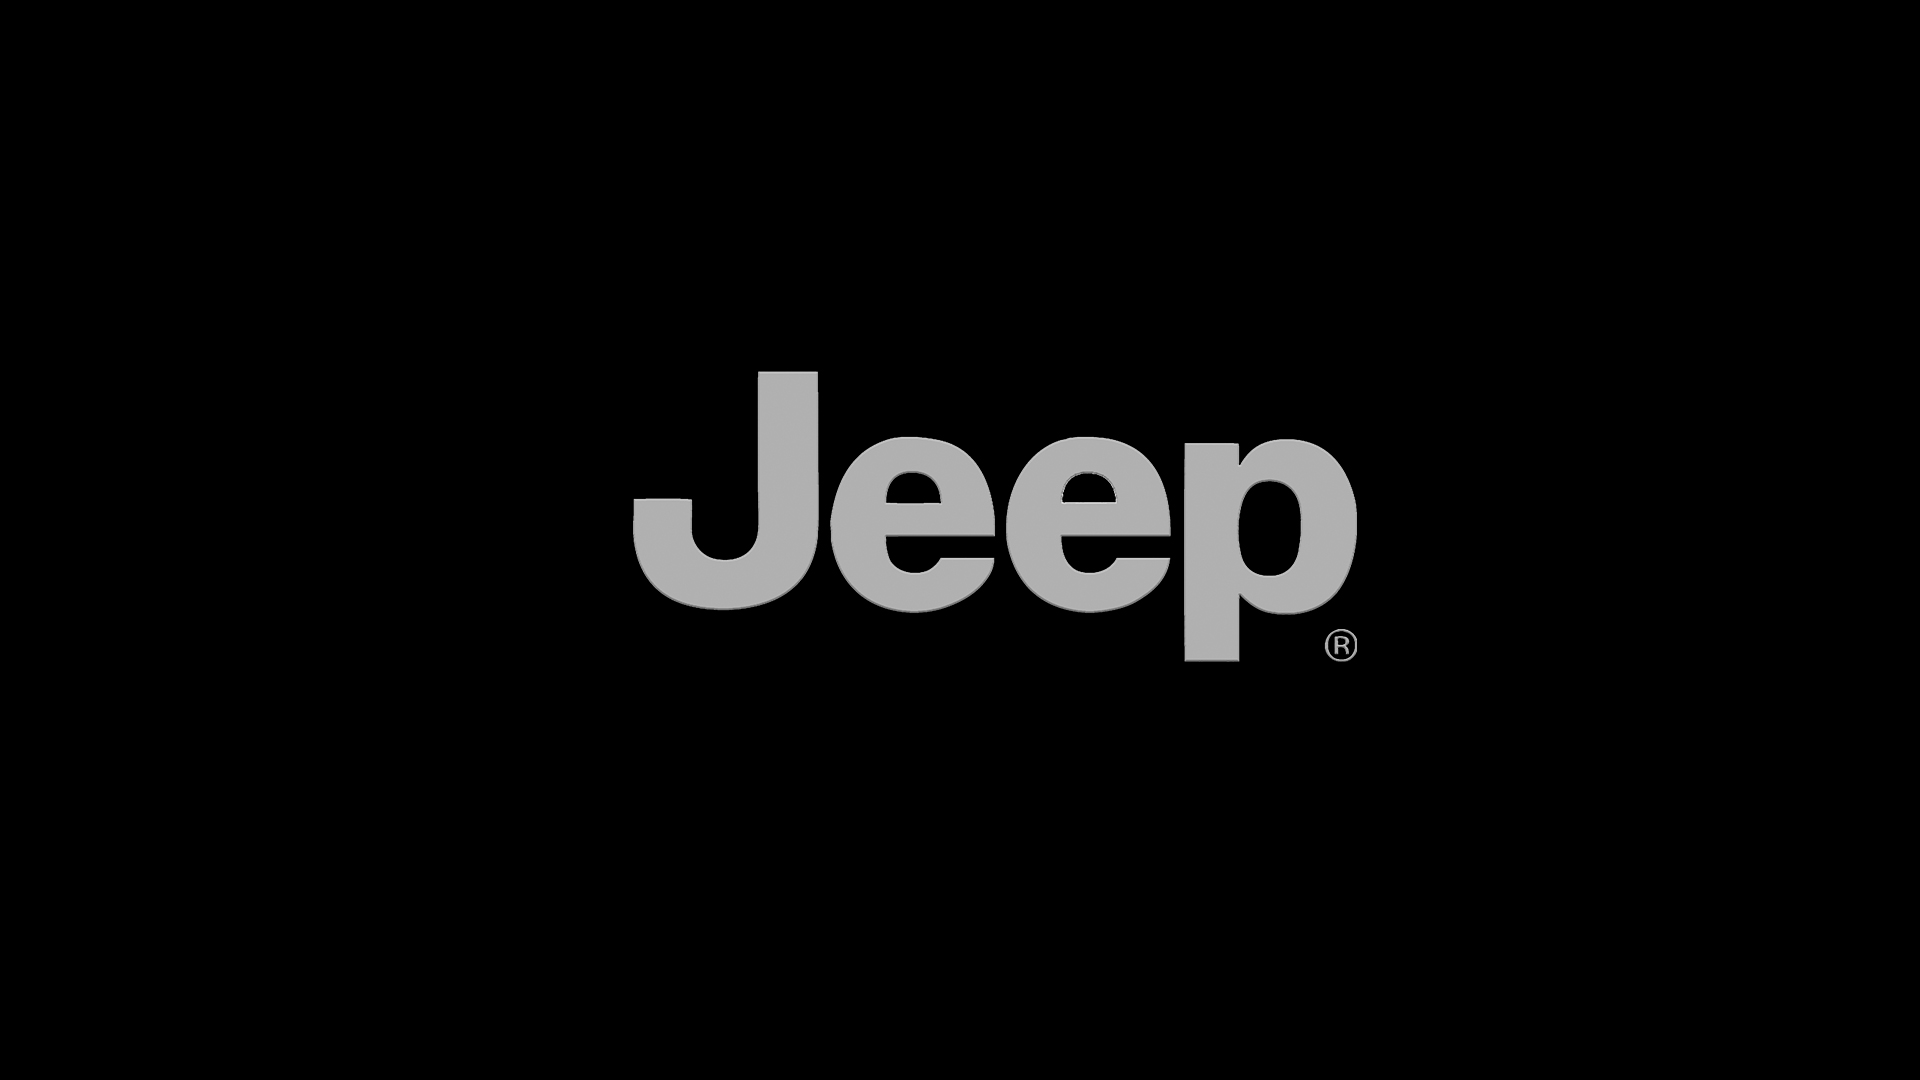 jeep-logo-black-wallpapers-hd | wallpaper.wiki